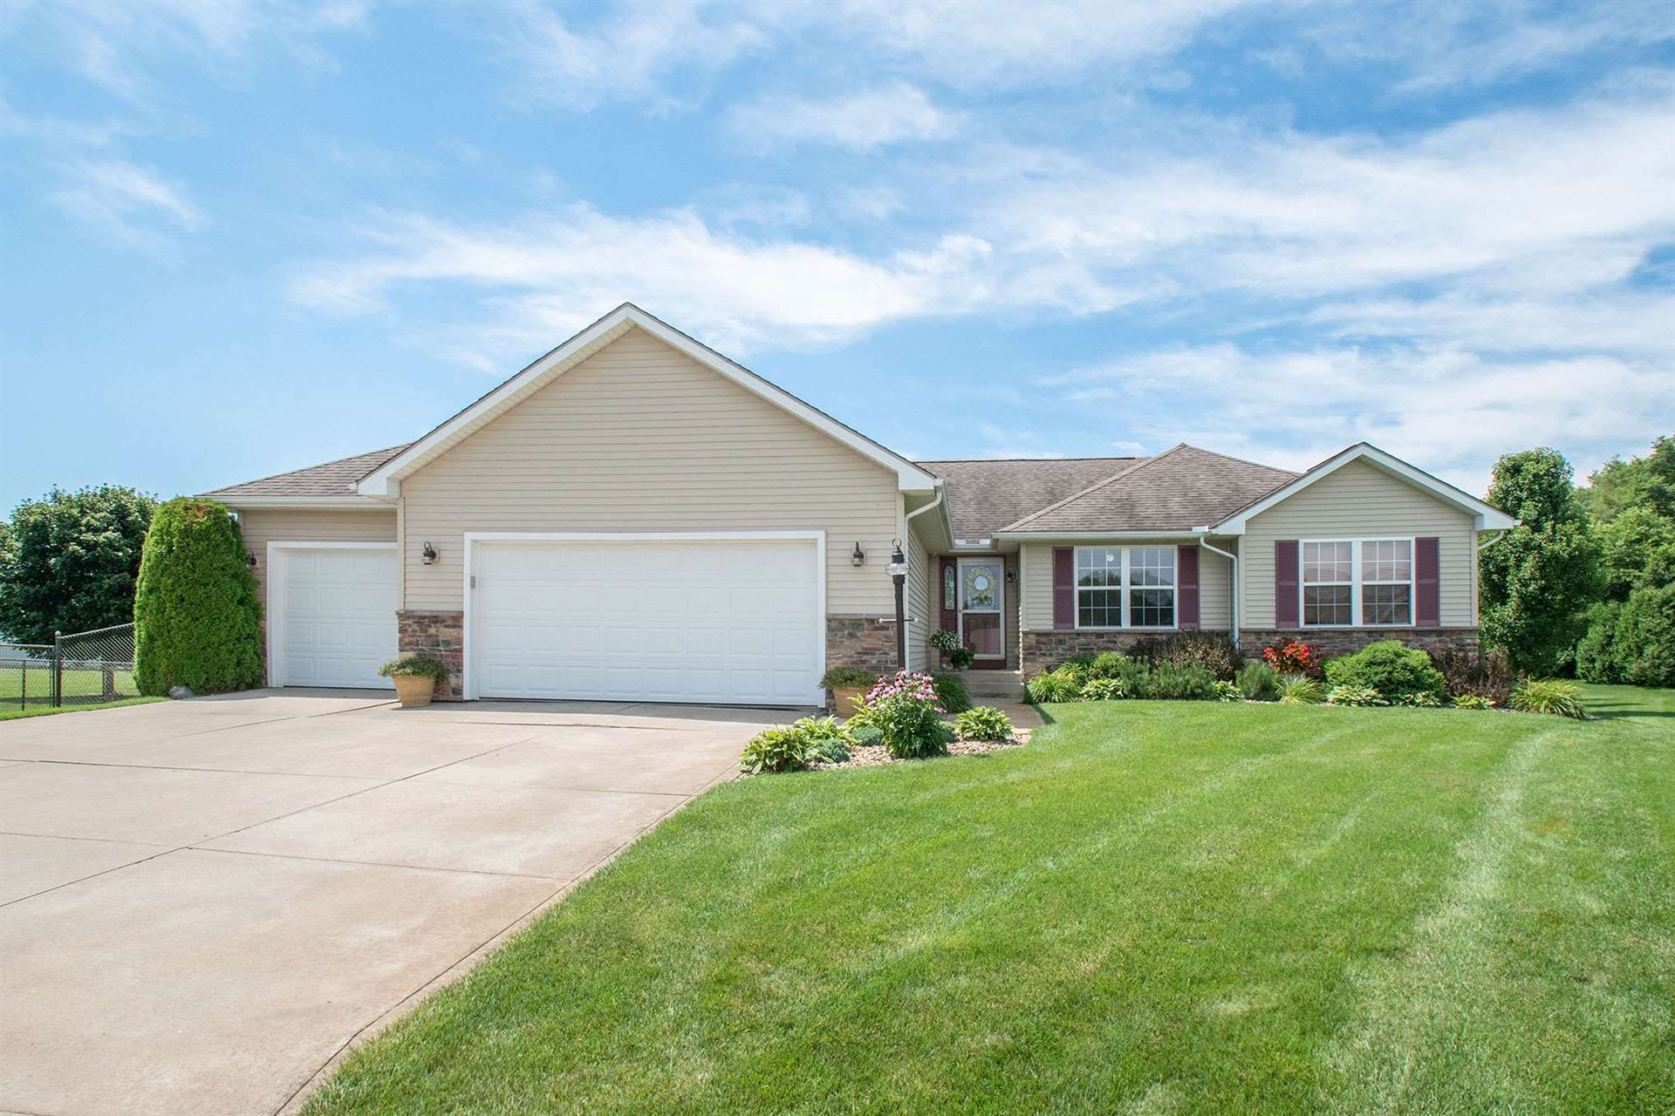 Photo of 23956 Autumnview Lane, Elkhart, IN 46517 (MLS # 202026077)